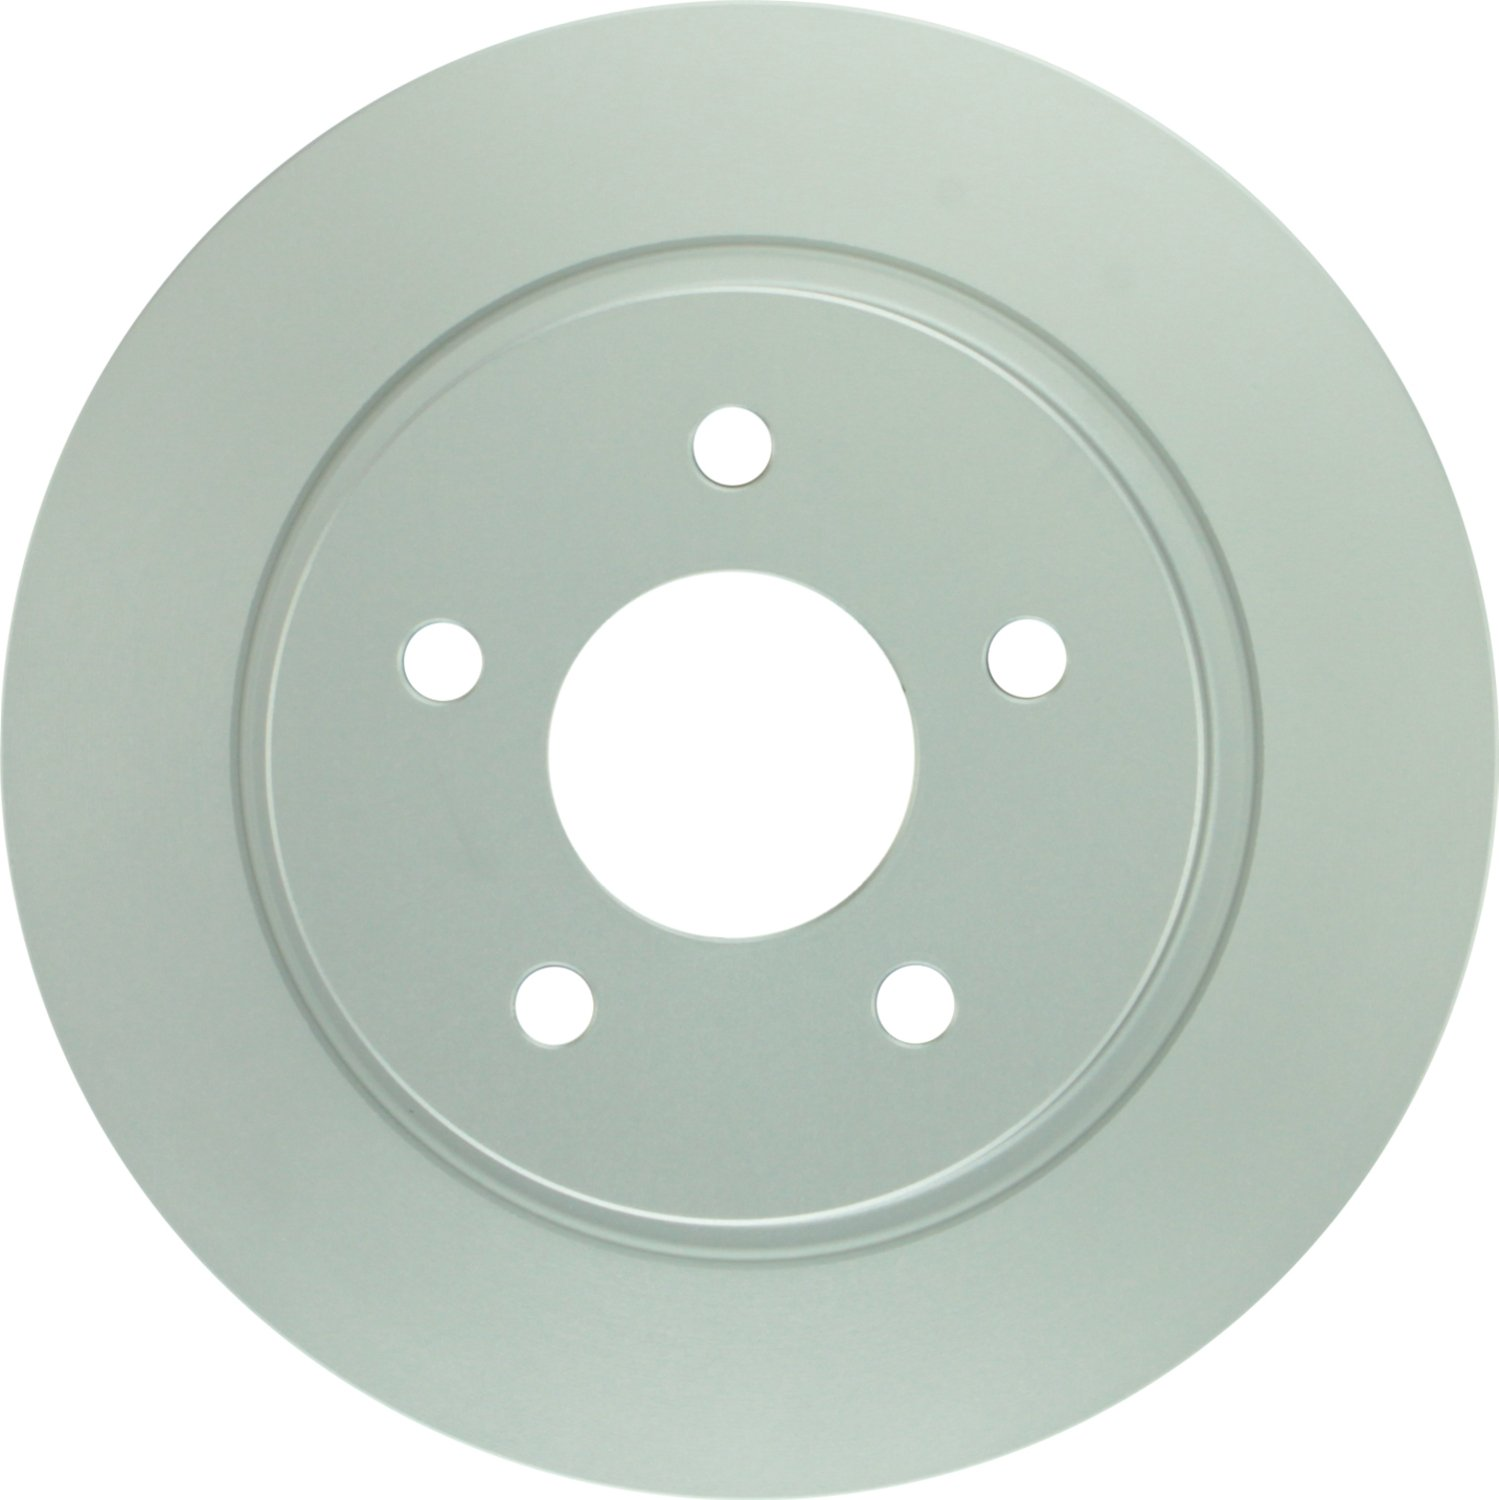 Bosch 20011533 QuietCast Premium Disc Brake Rotor, Rear